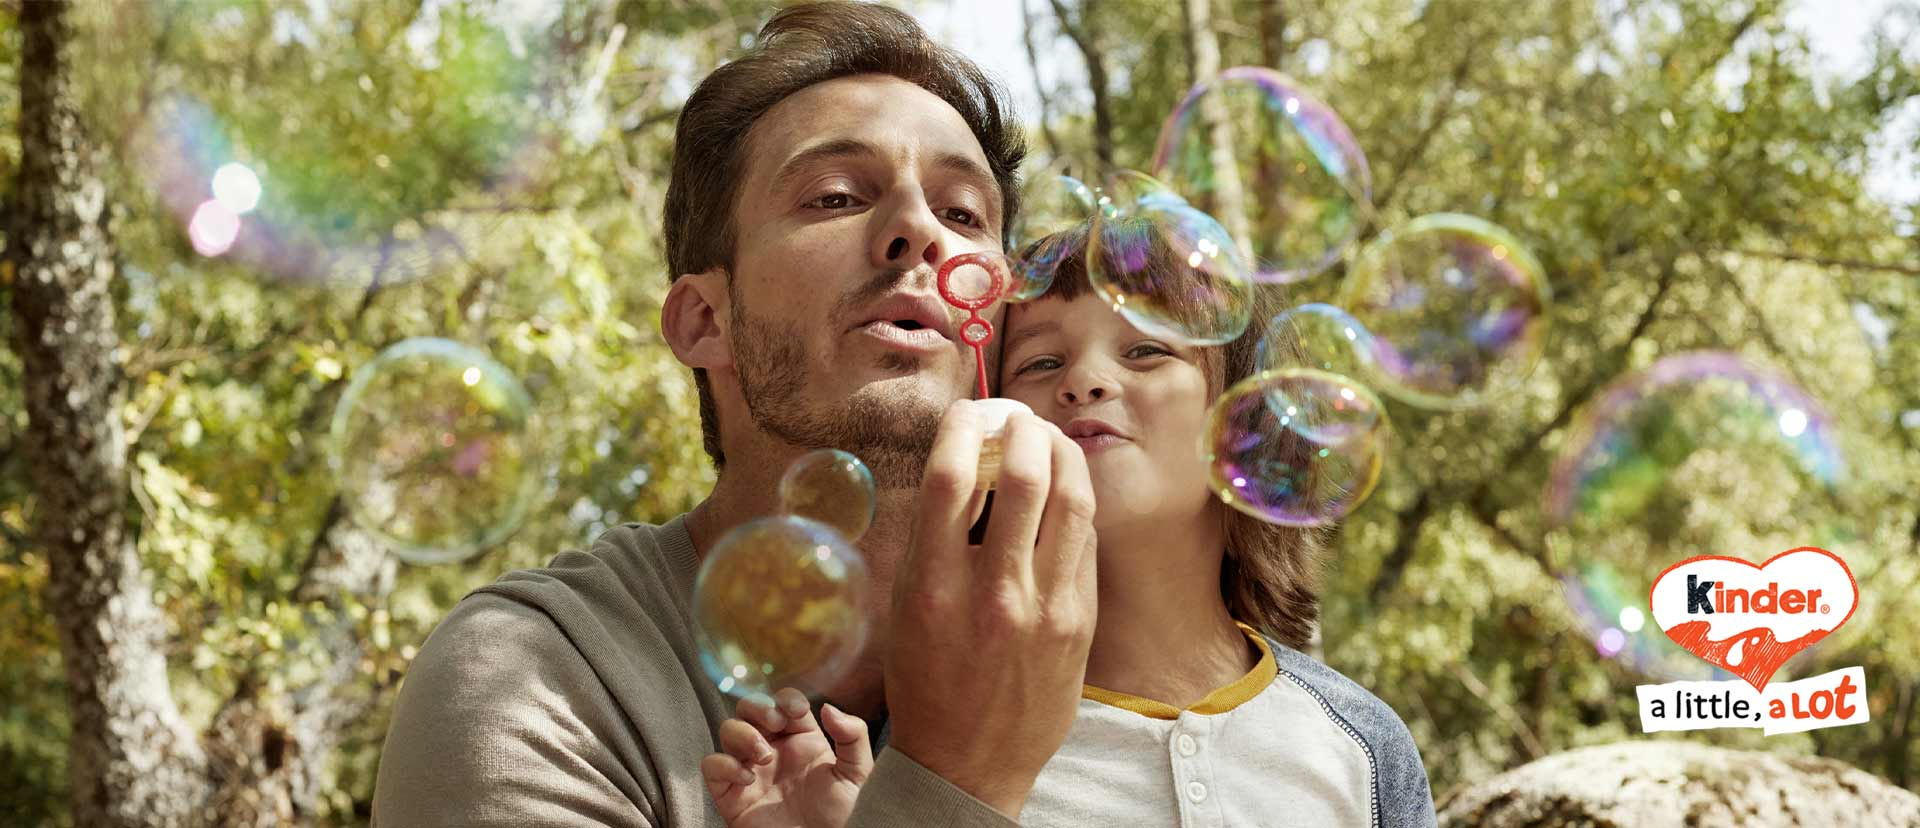 bubbles_-_cross_link_-_desktop_new